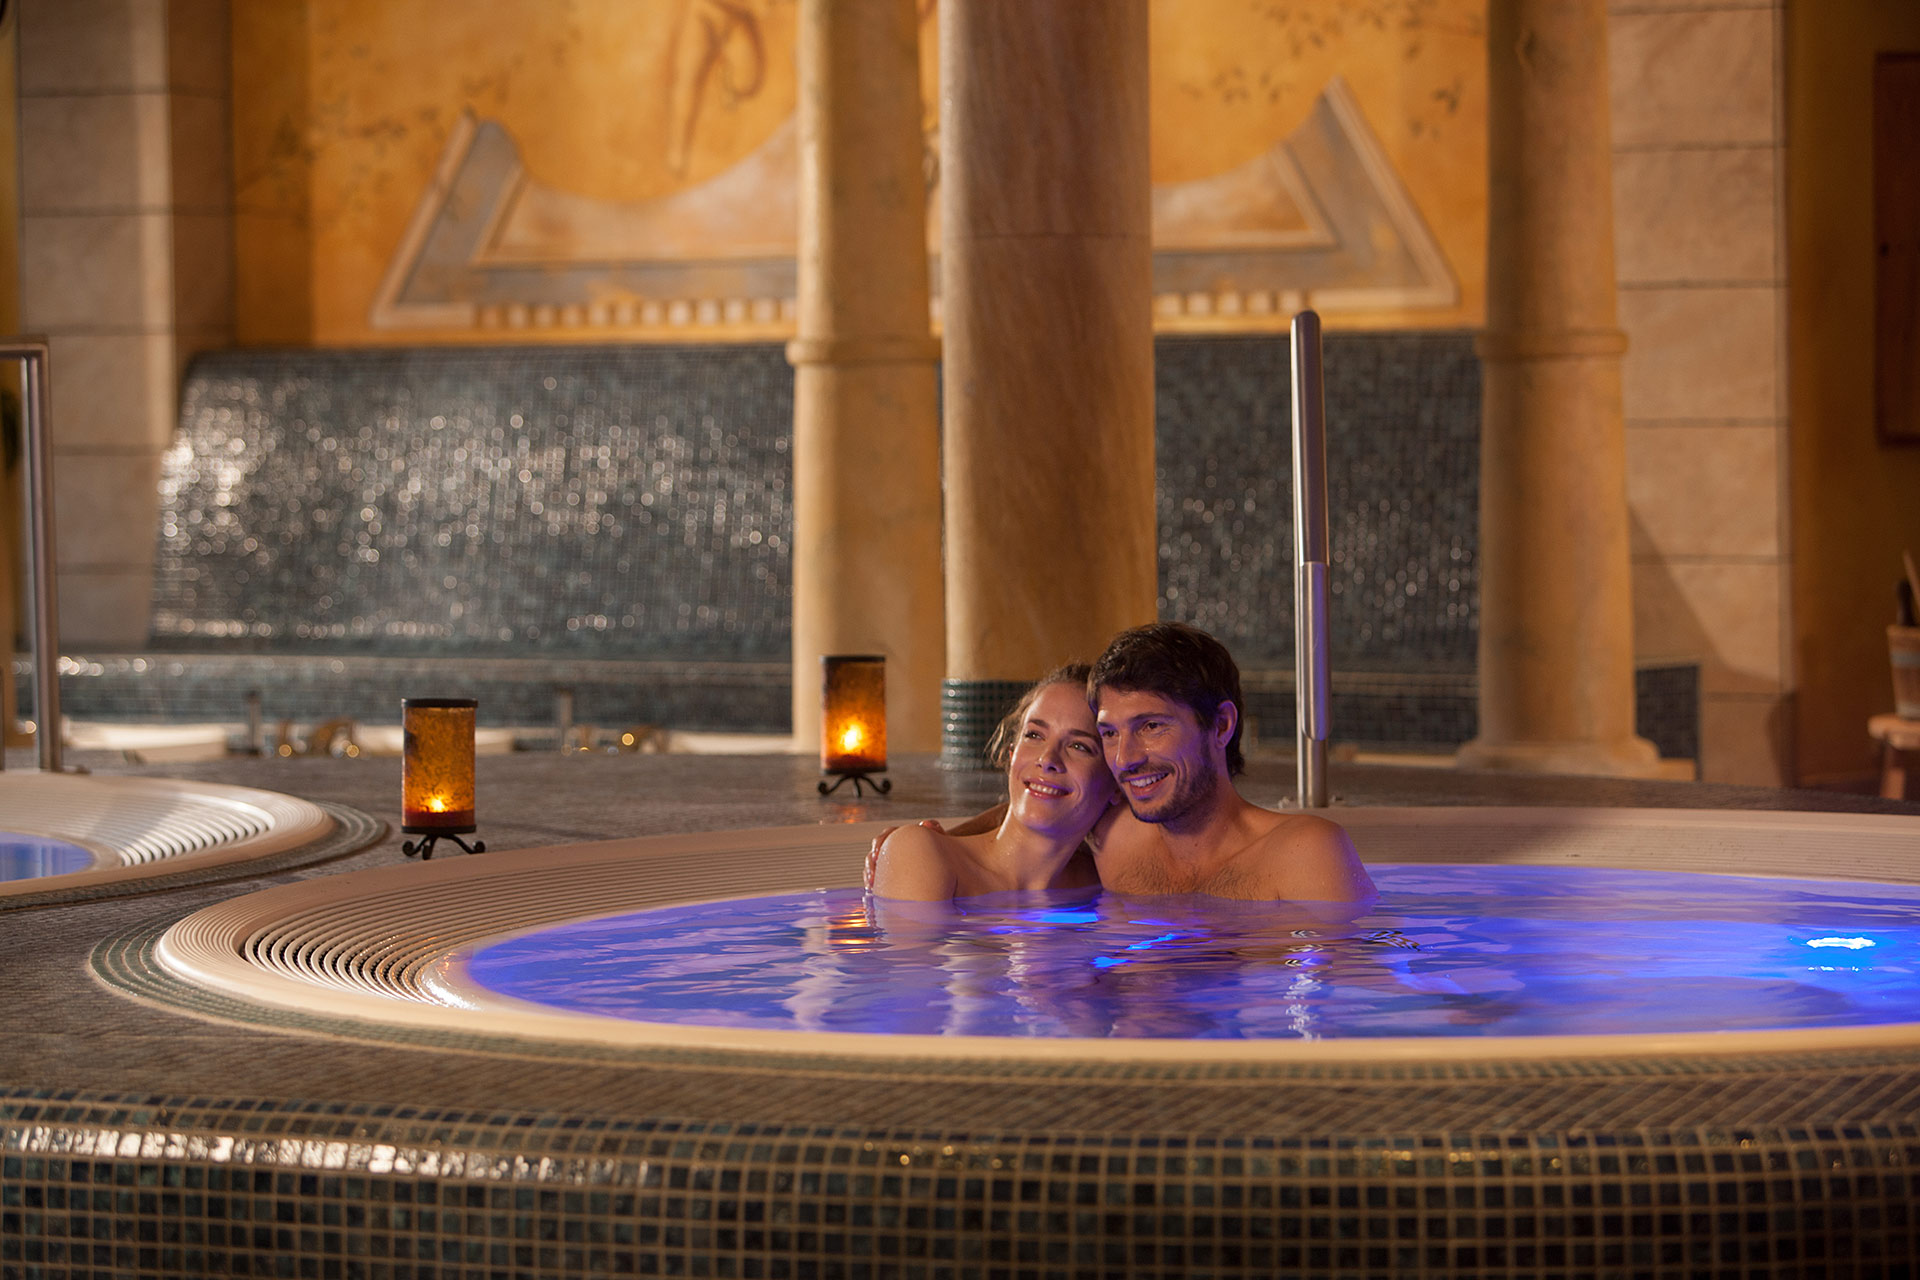 Wellness- & Saunaparadies in der Westfalen-Therme